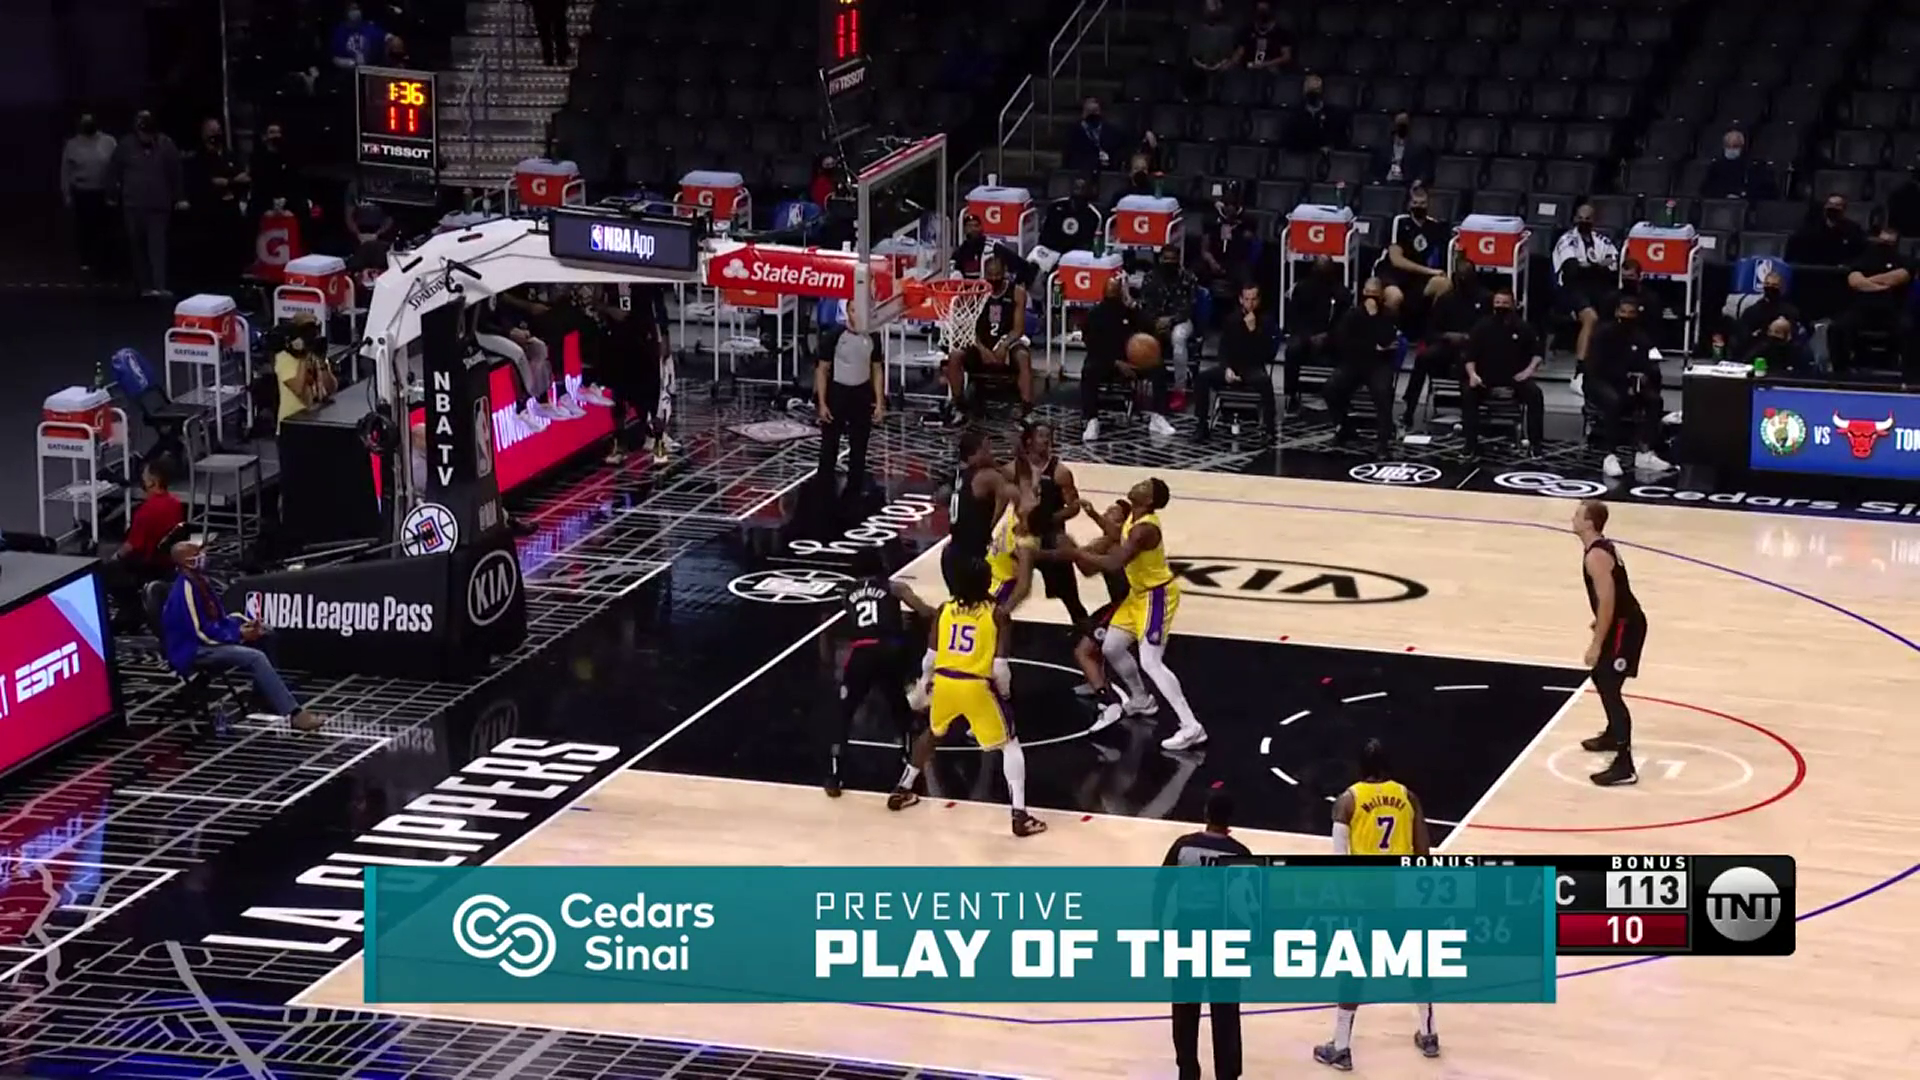 Cedars-Sinai Preventive Play of the Game   Clippers vs Lakers (5.6.21)